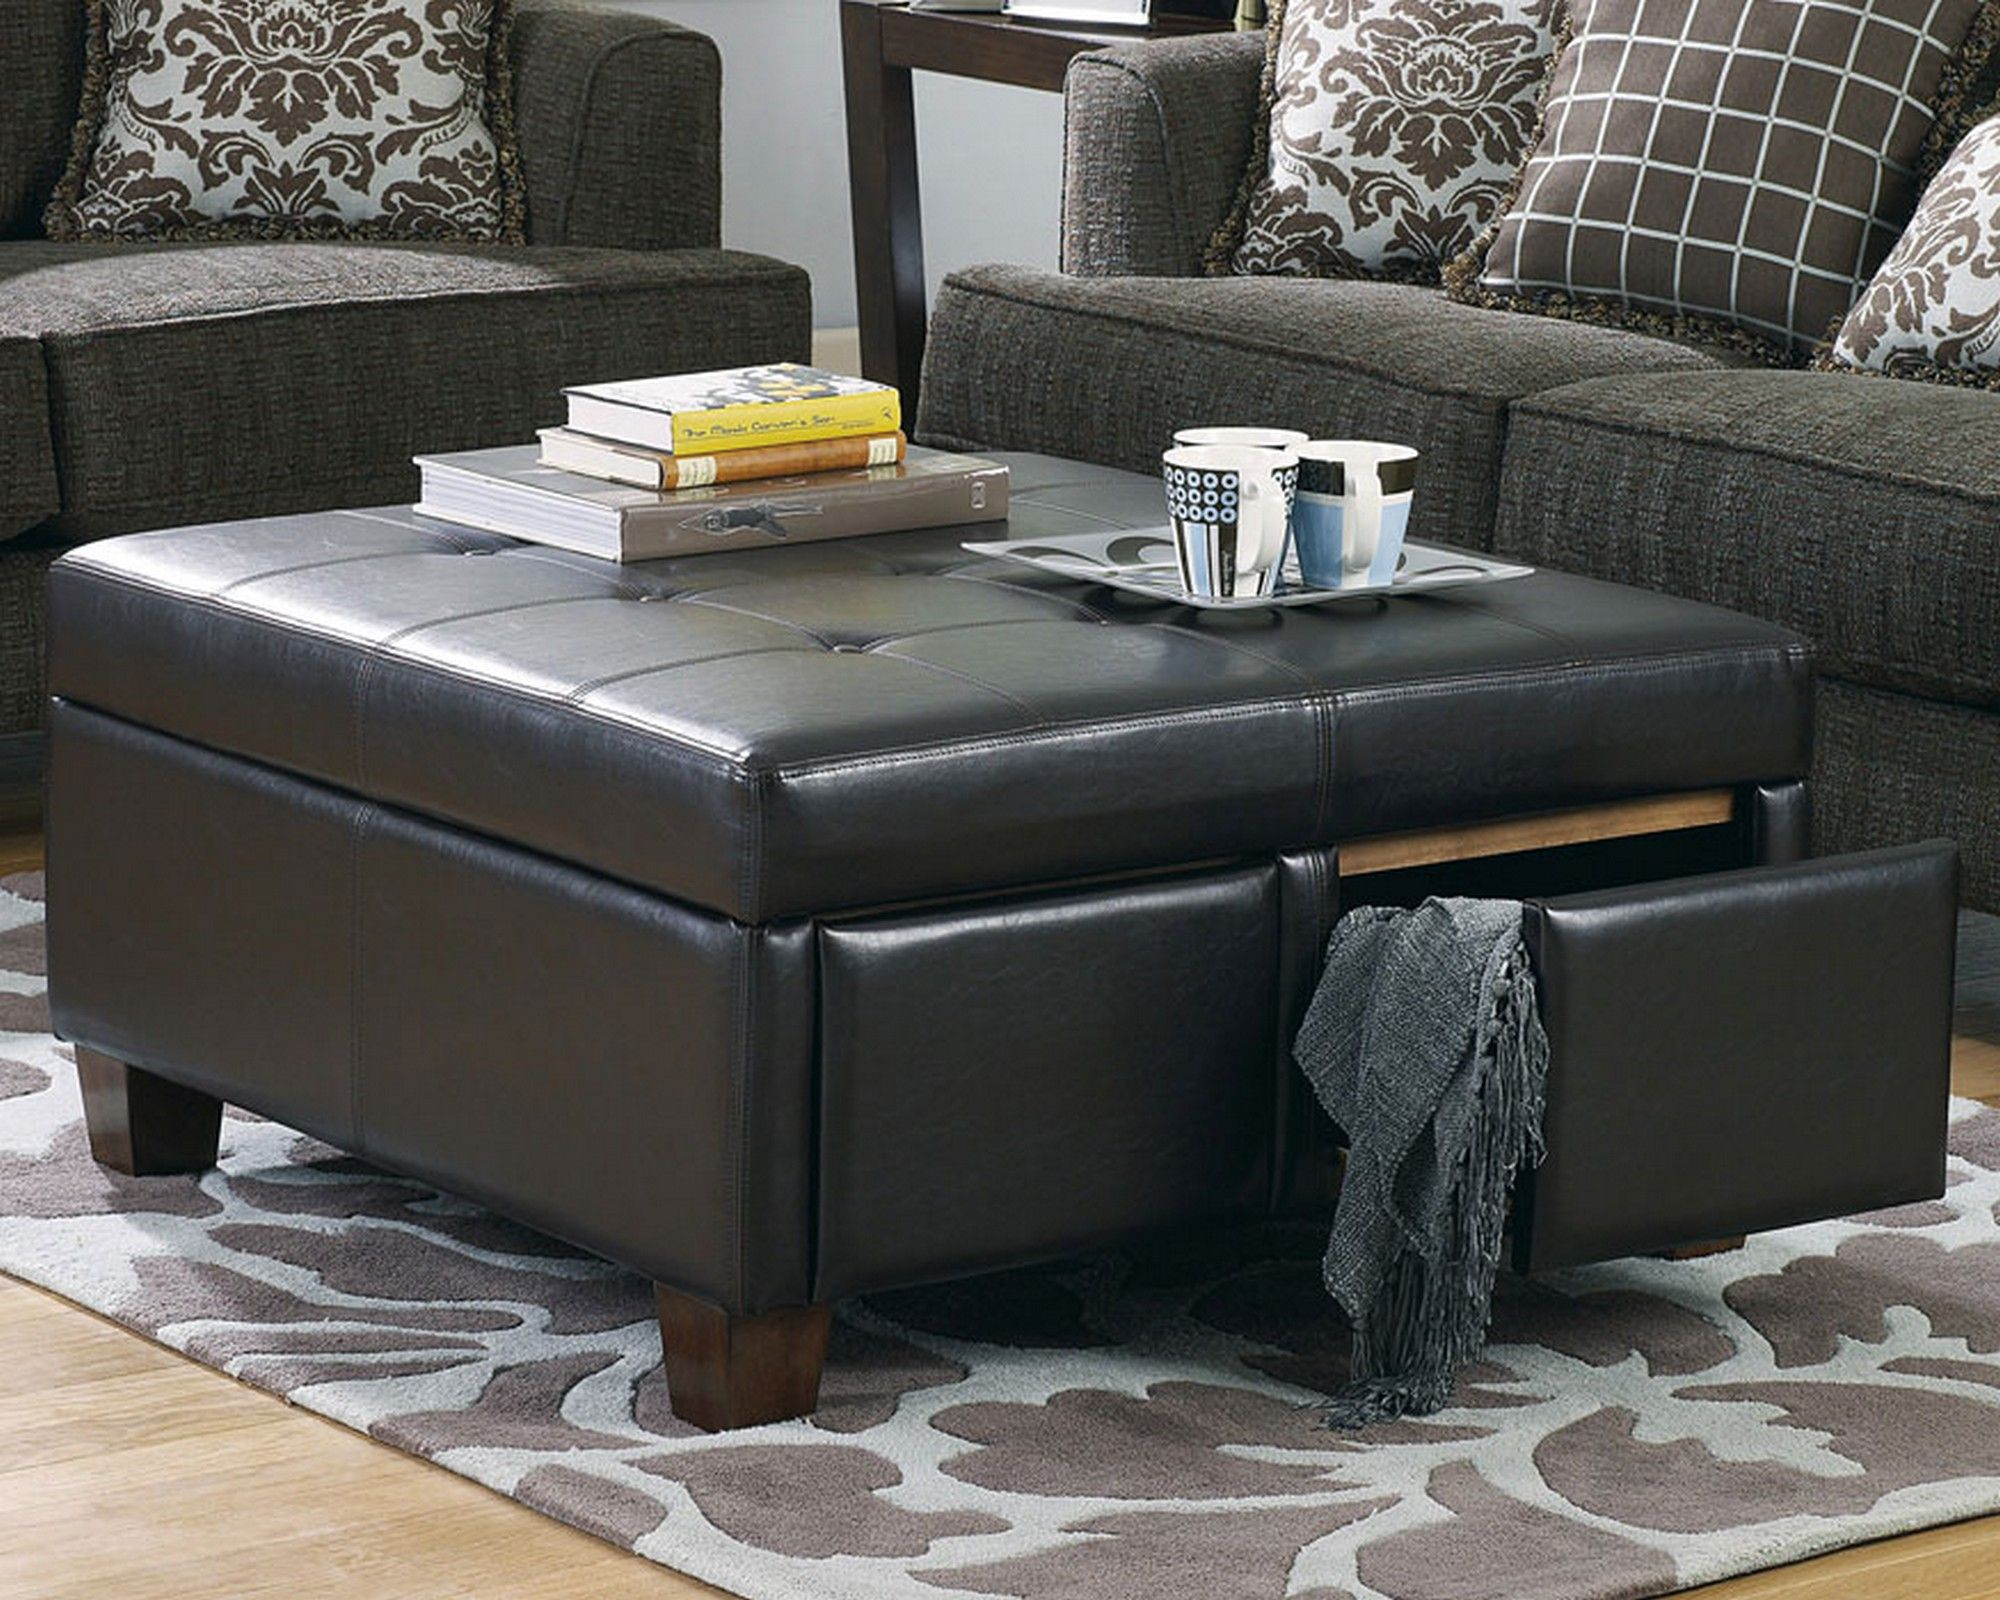 Awesome Inspirational Cushion Ottoman Coffee Table 30 In Small